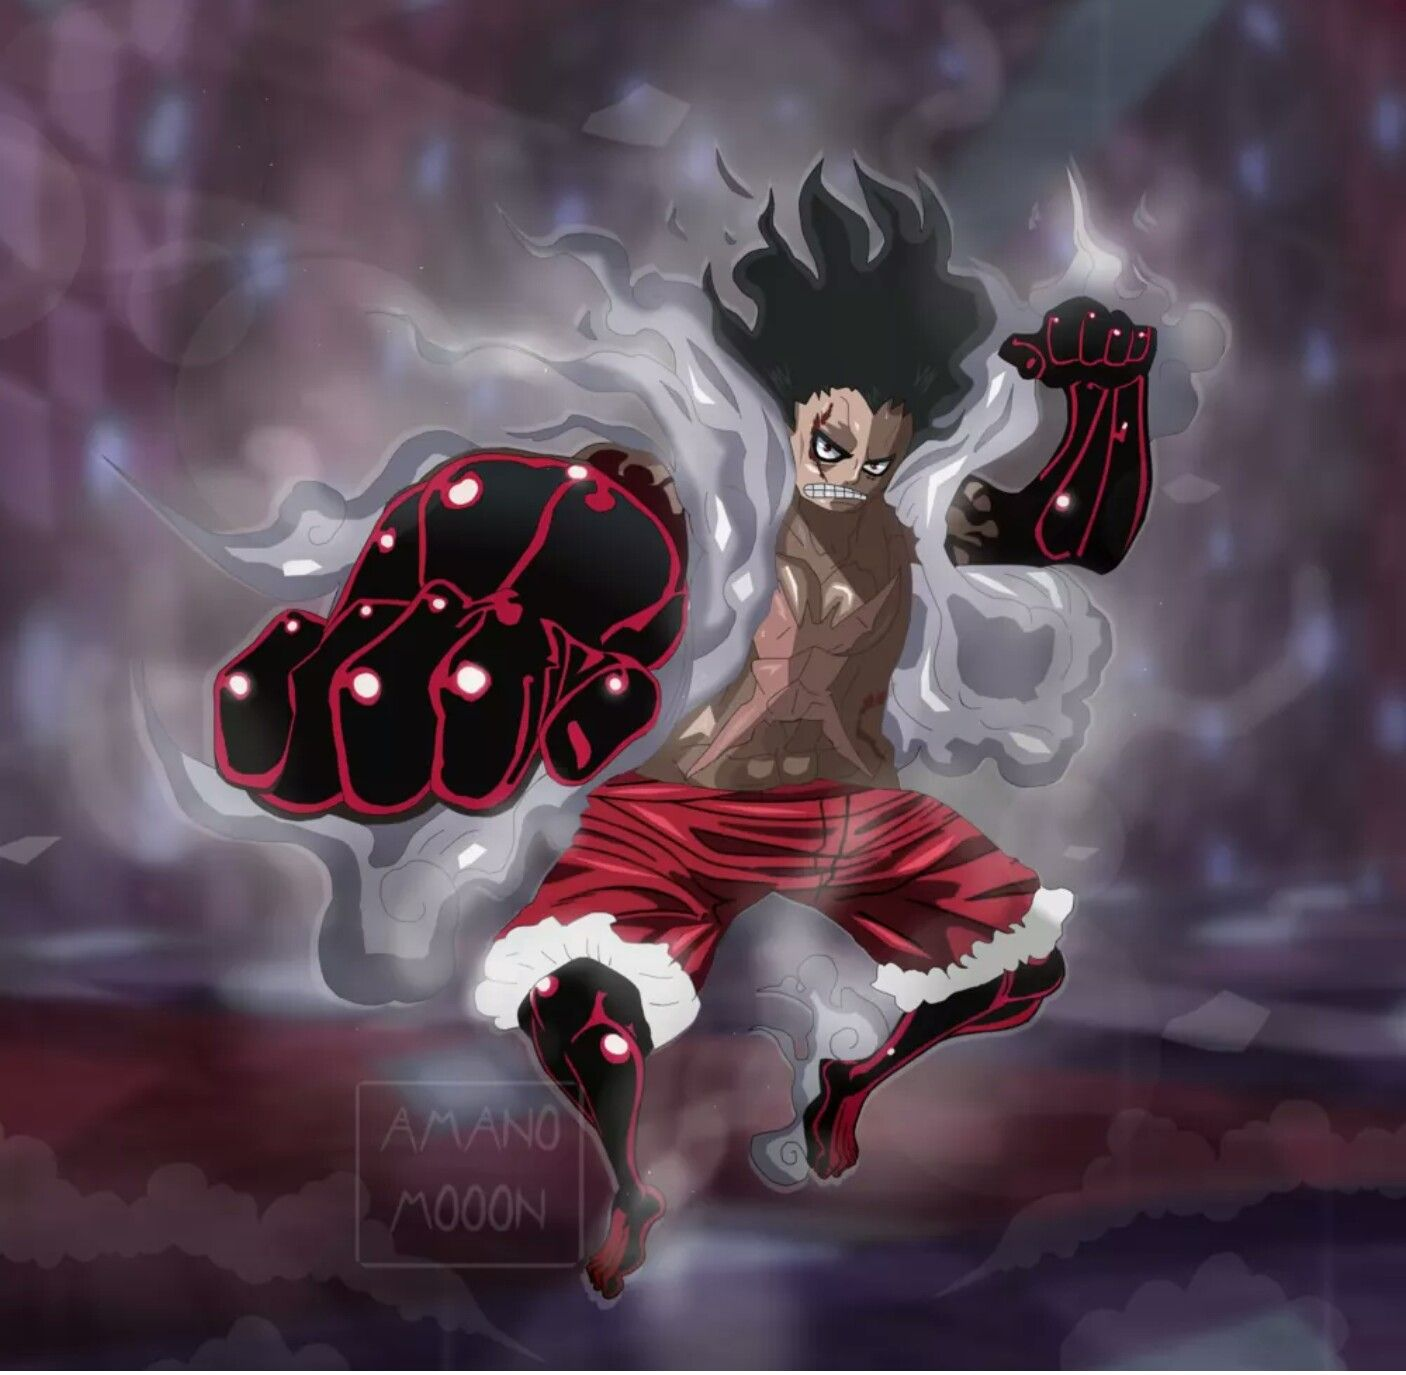 Snake Man Luffy Gear 4 One Piece Anime Monkey D Luffy